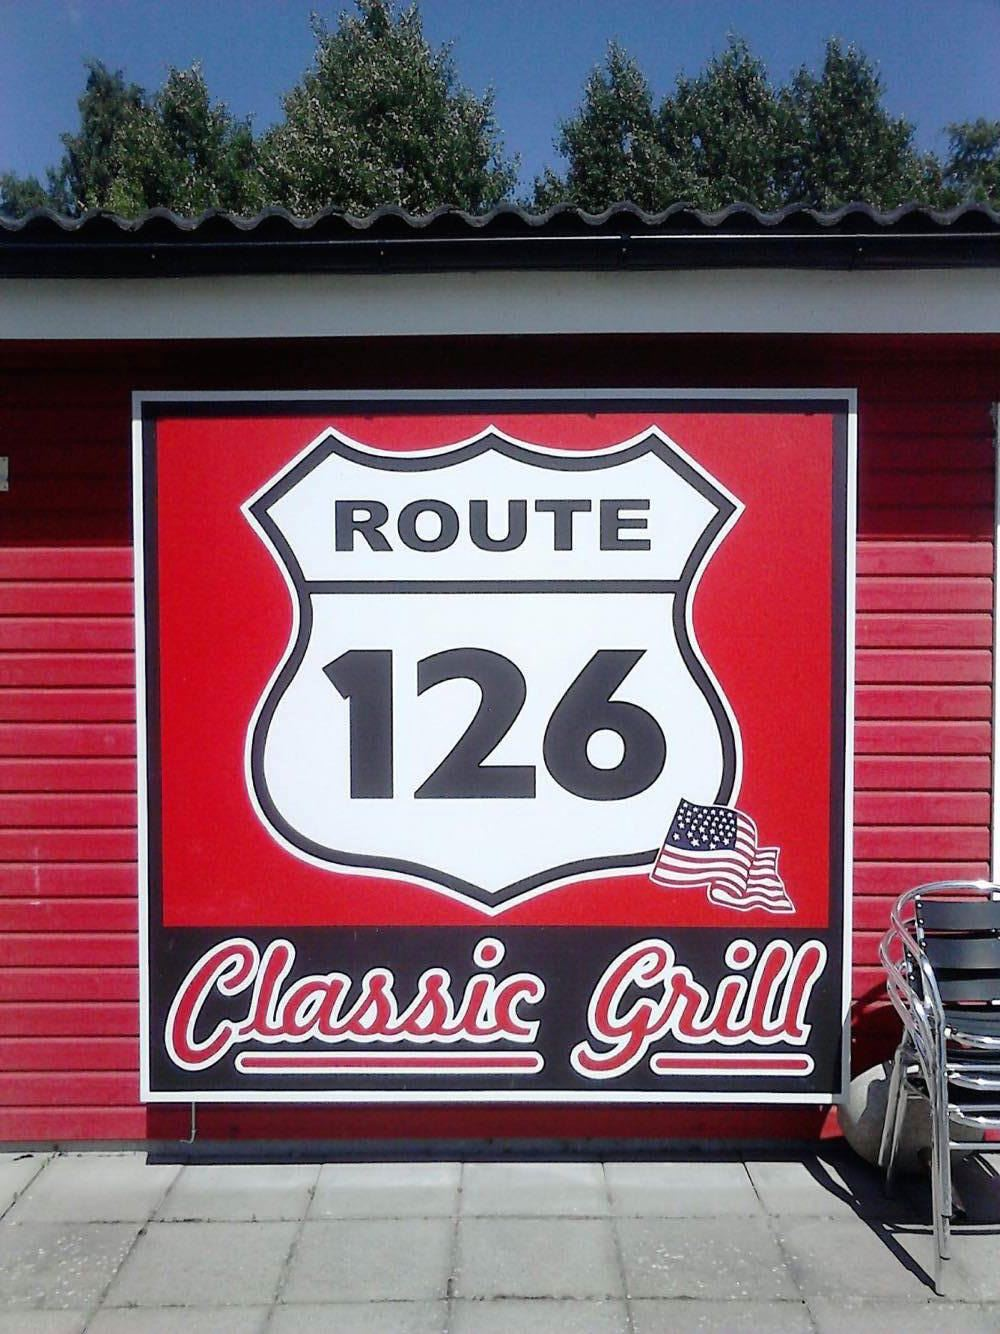 Route 126 Classic Grill